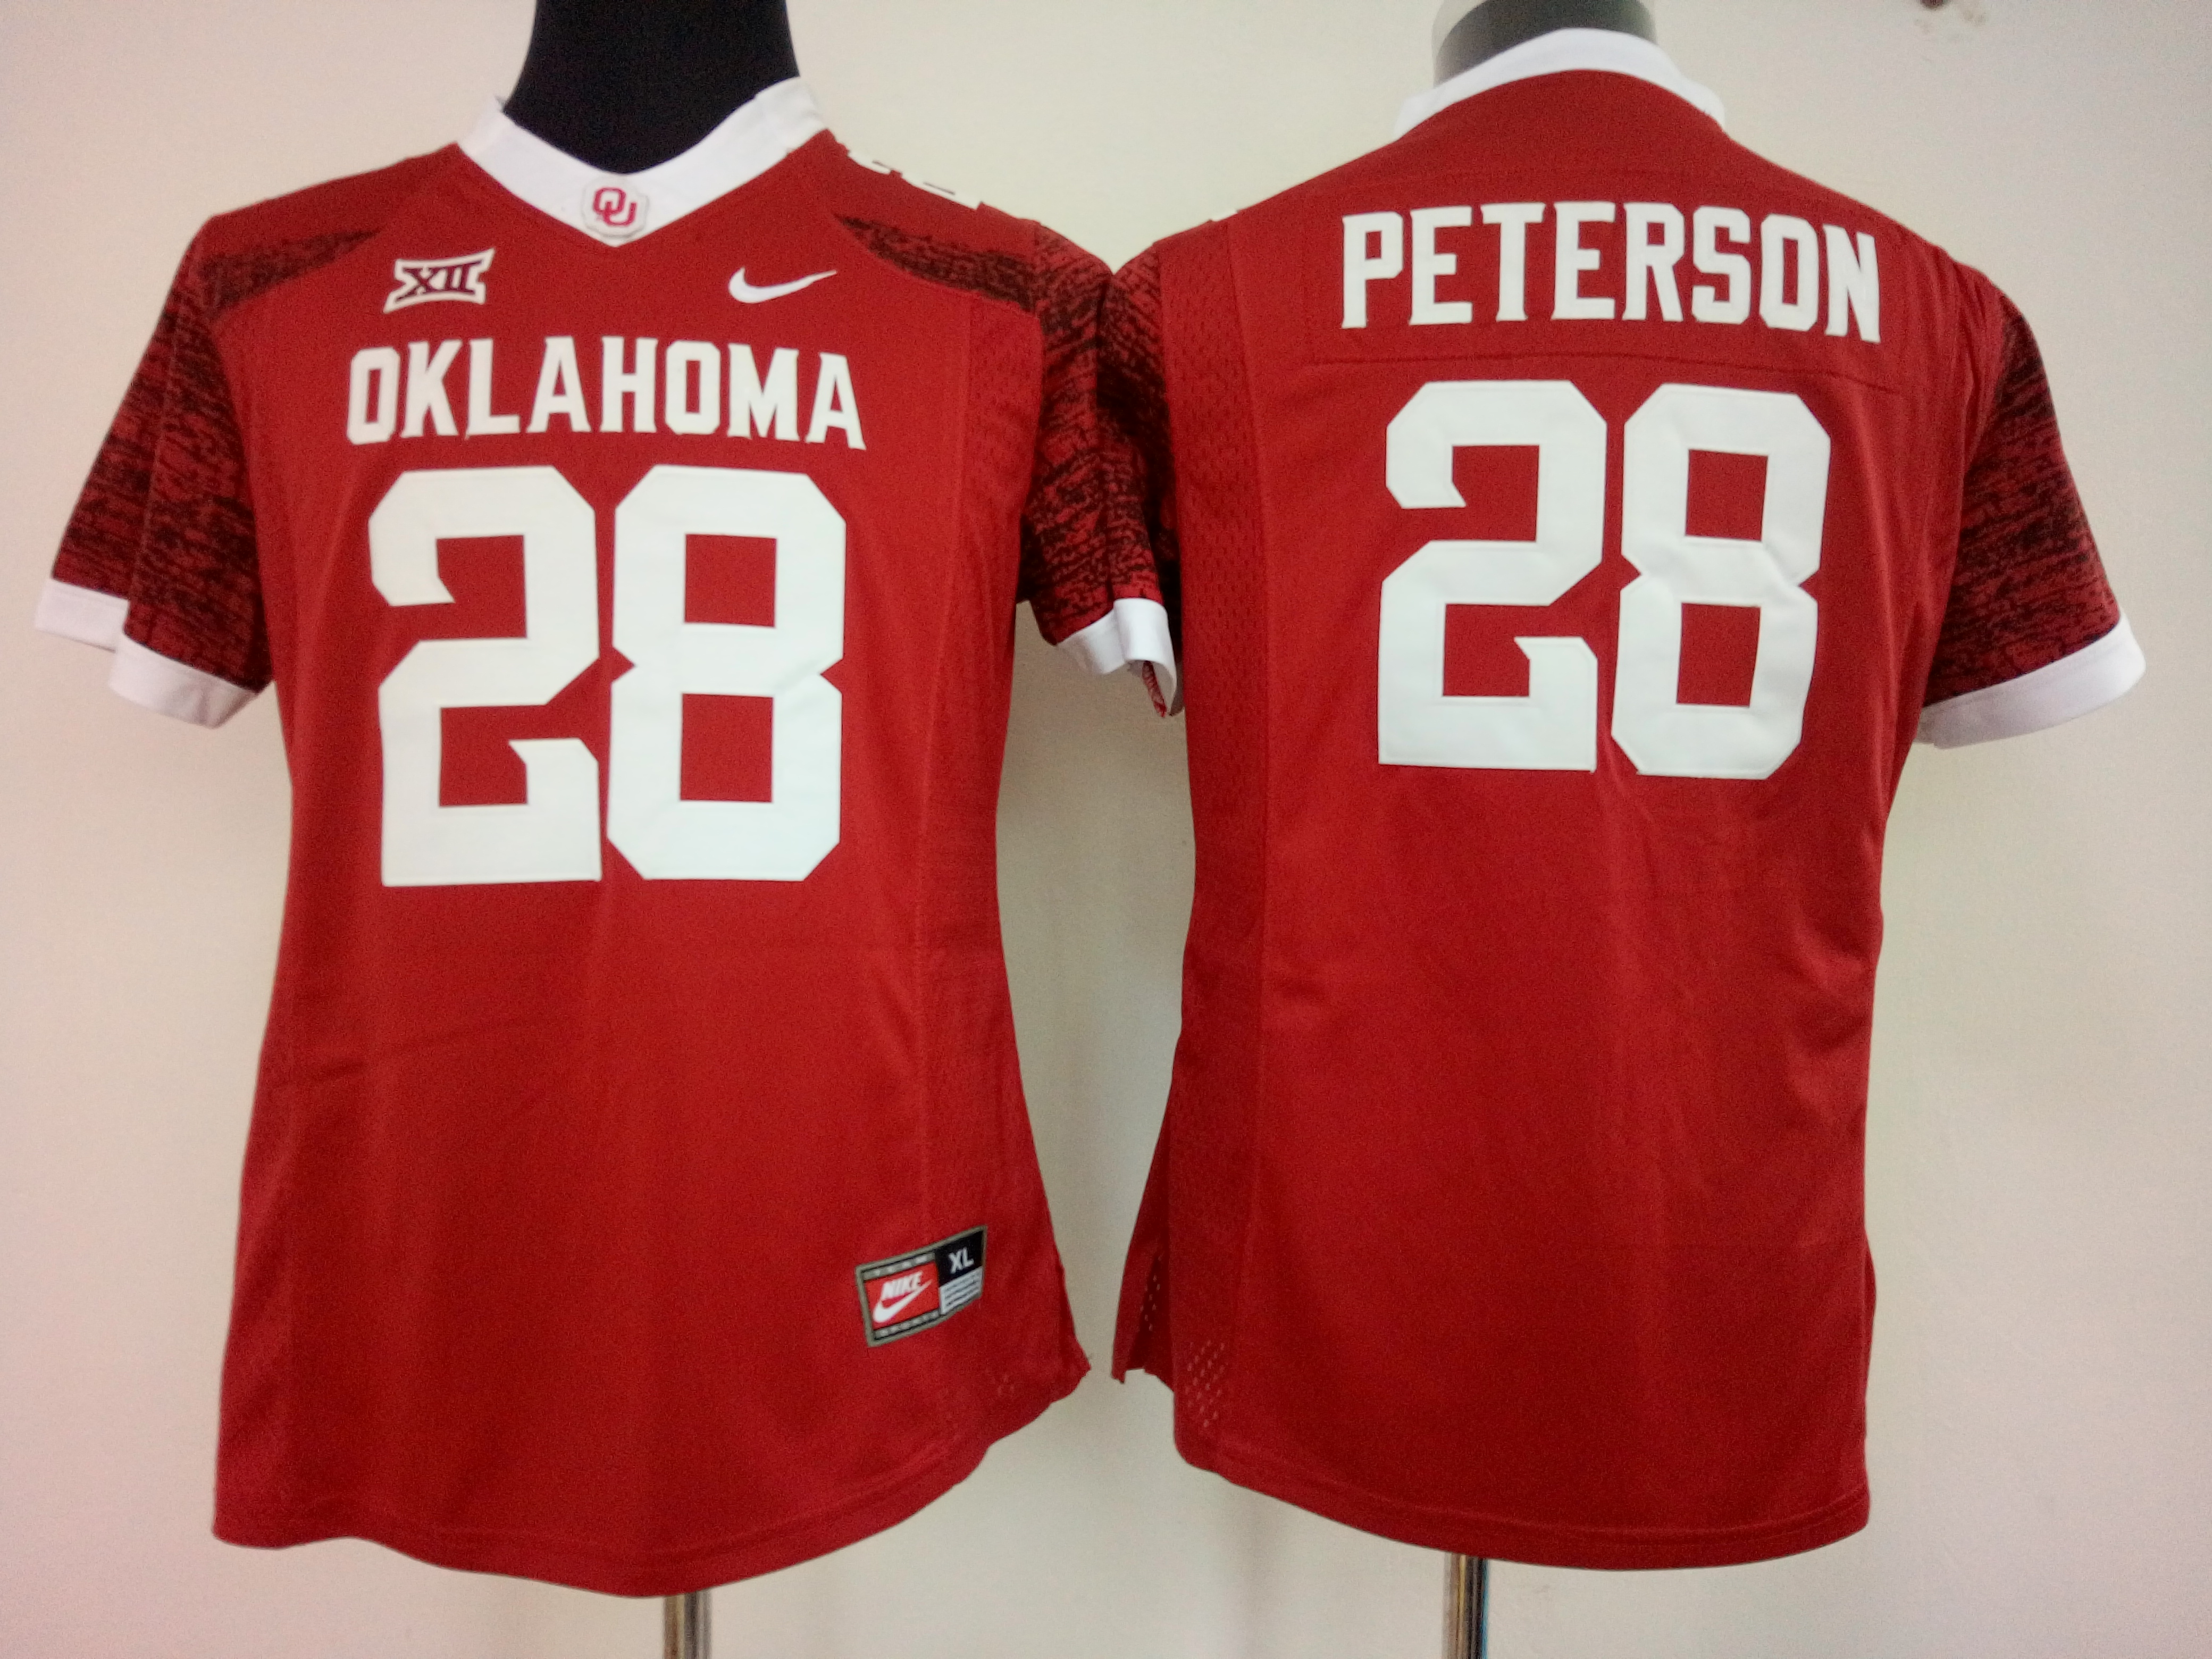 NCAA Womens Oklahoma Sooners Red 28 peterson jerseys